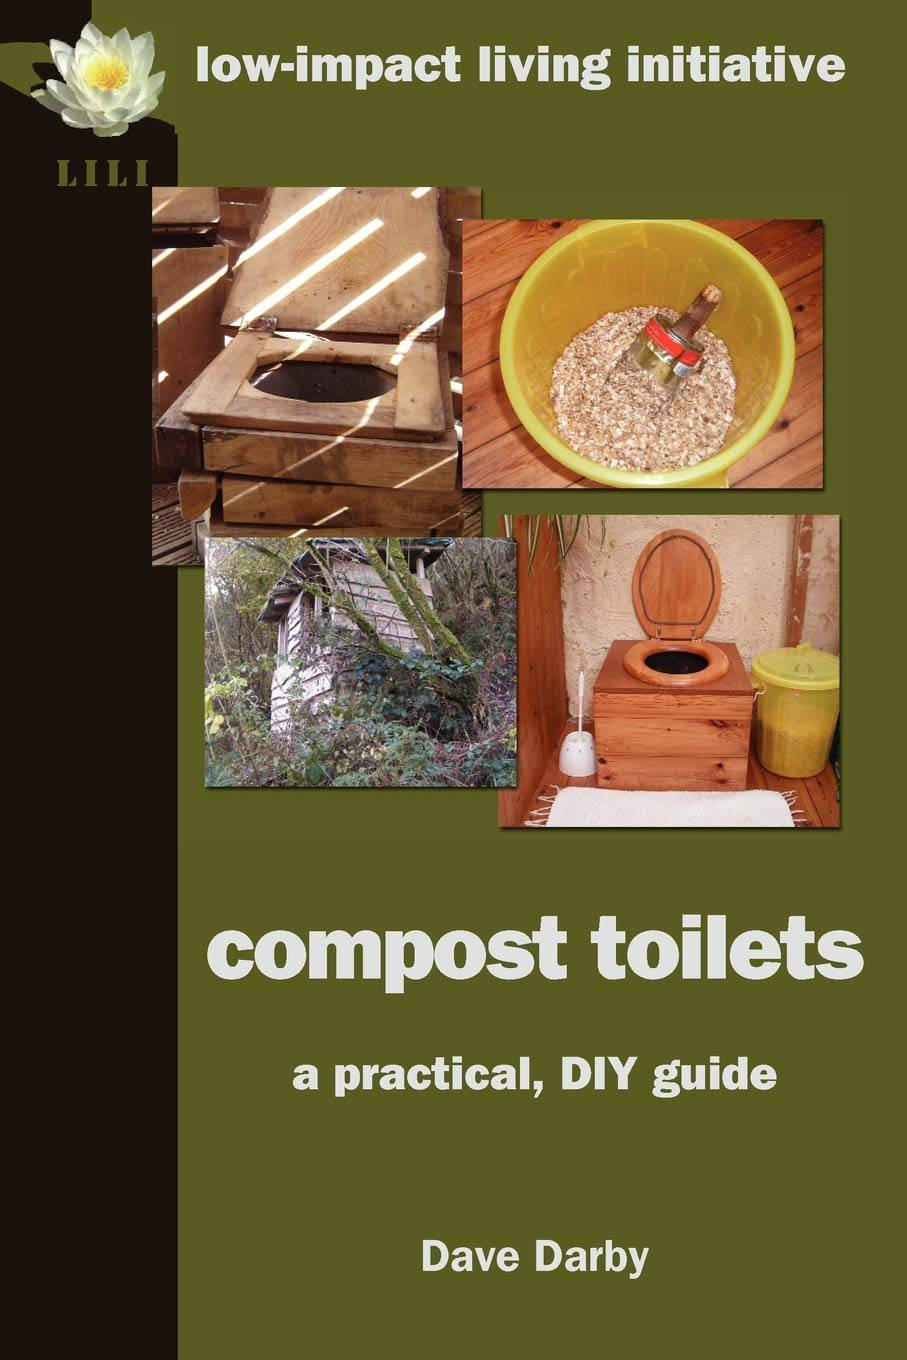 Compost toilets, a practical diy guide by Dave Darby